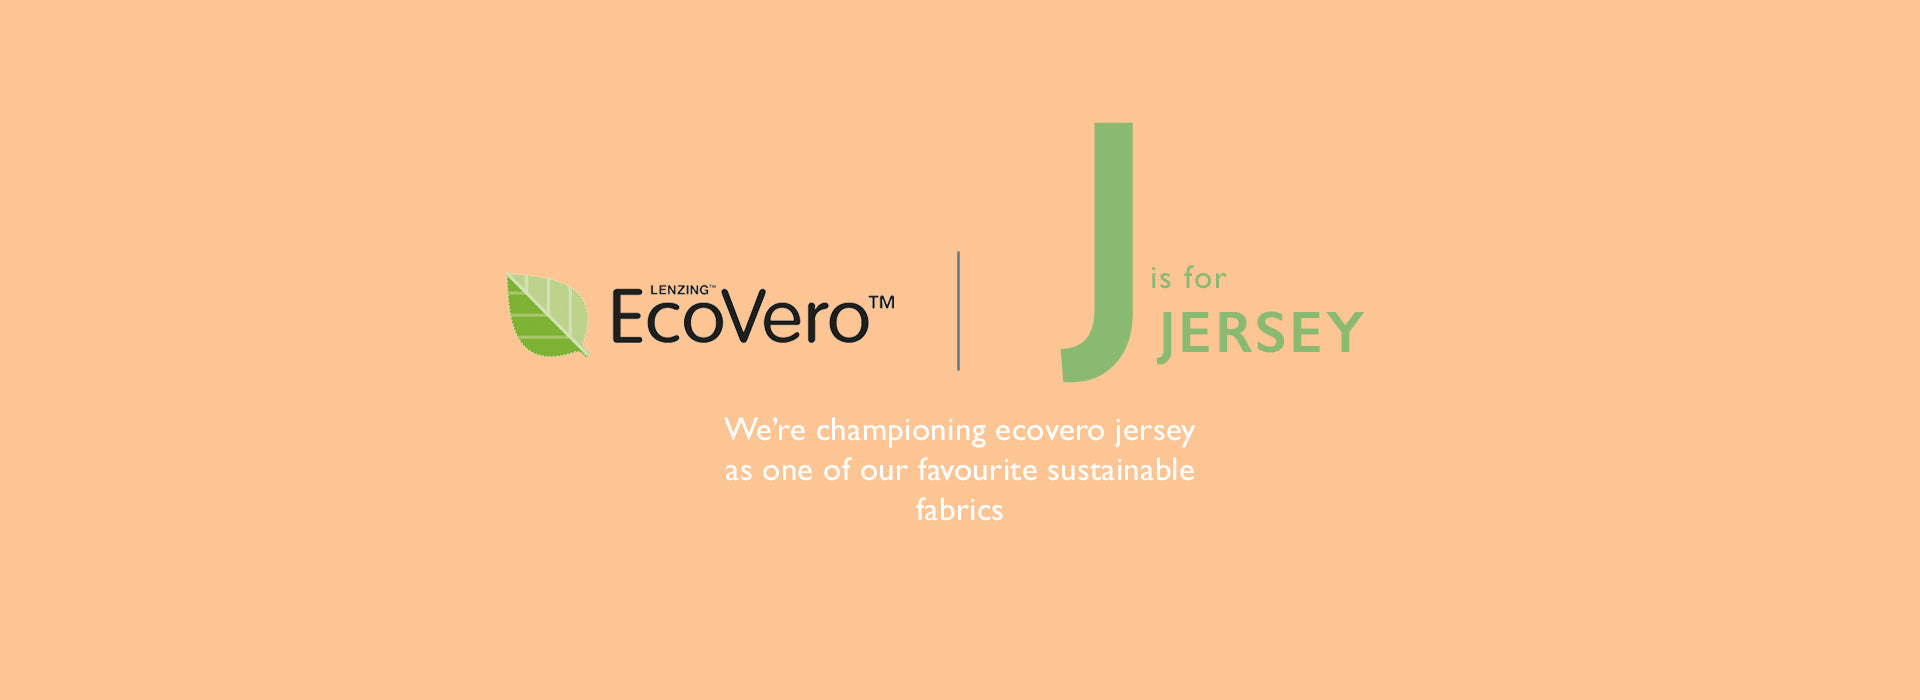 J is for Jersey. We're championing ecovero jersey as one of our favourite sustainable fabrics